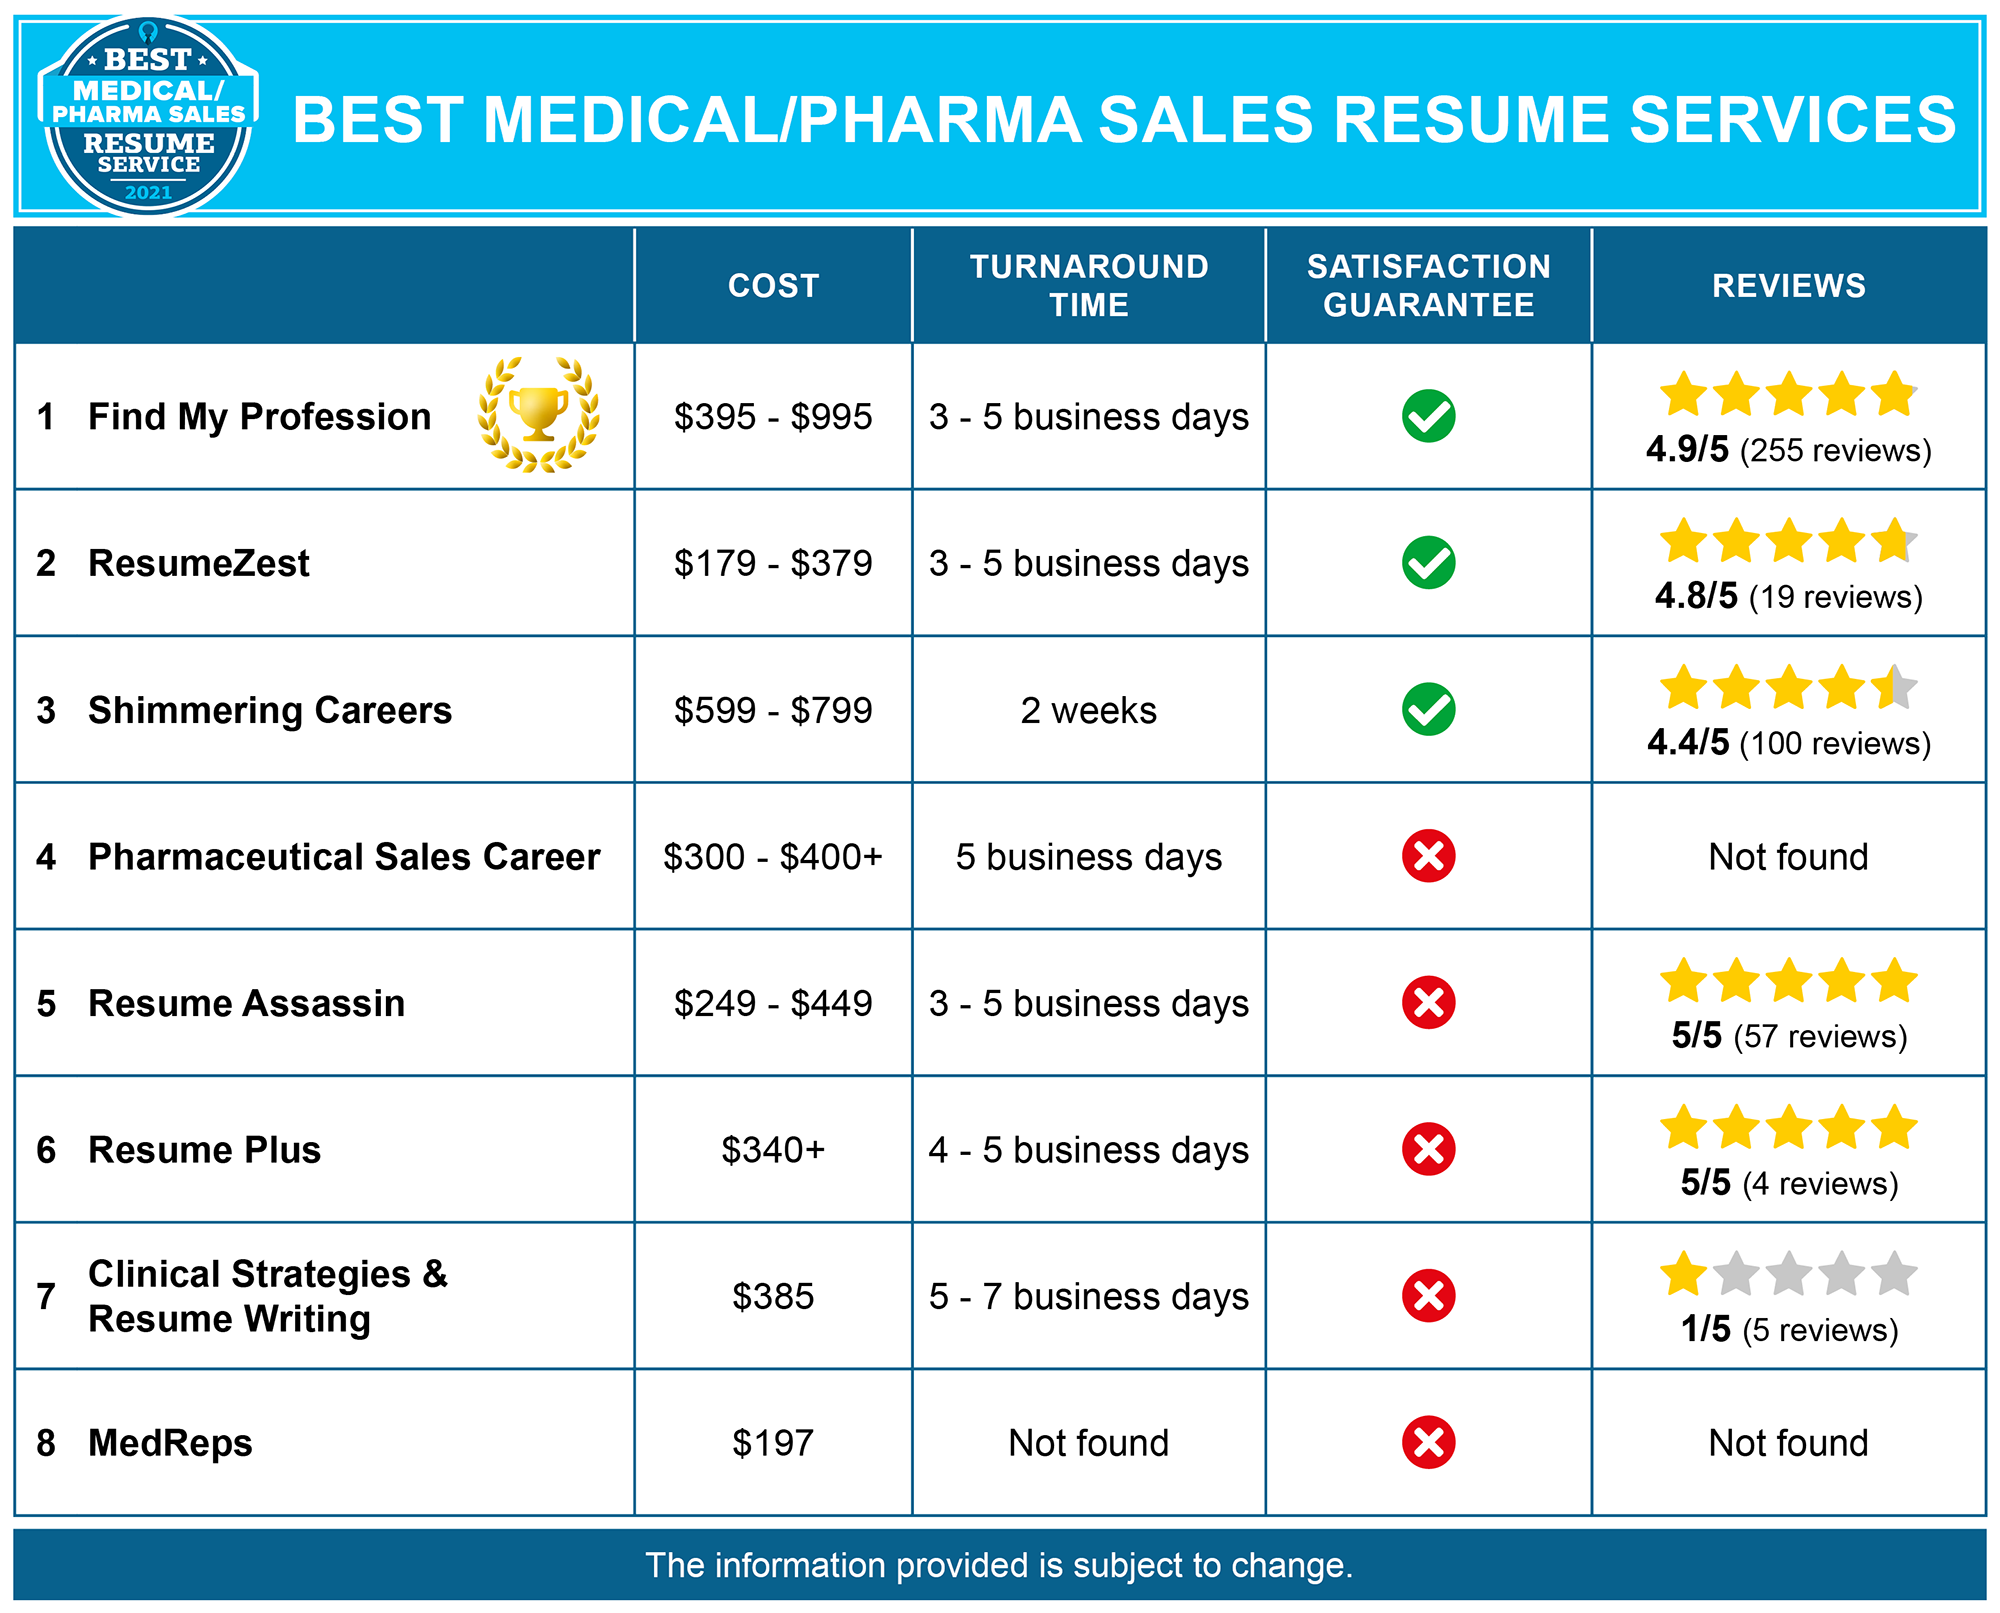 8 Best Medical and Pharmaceutical Sales Resume Services